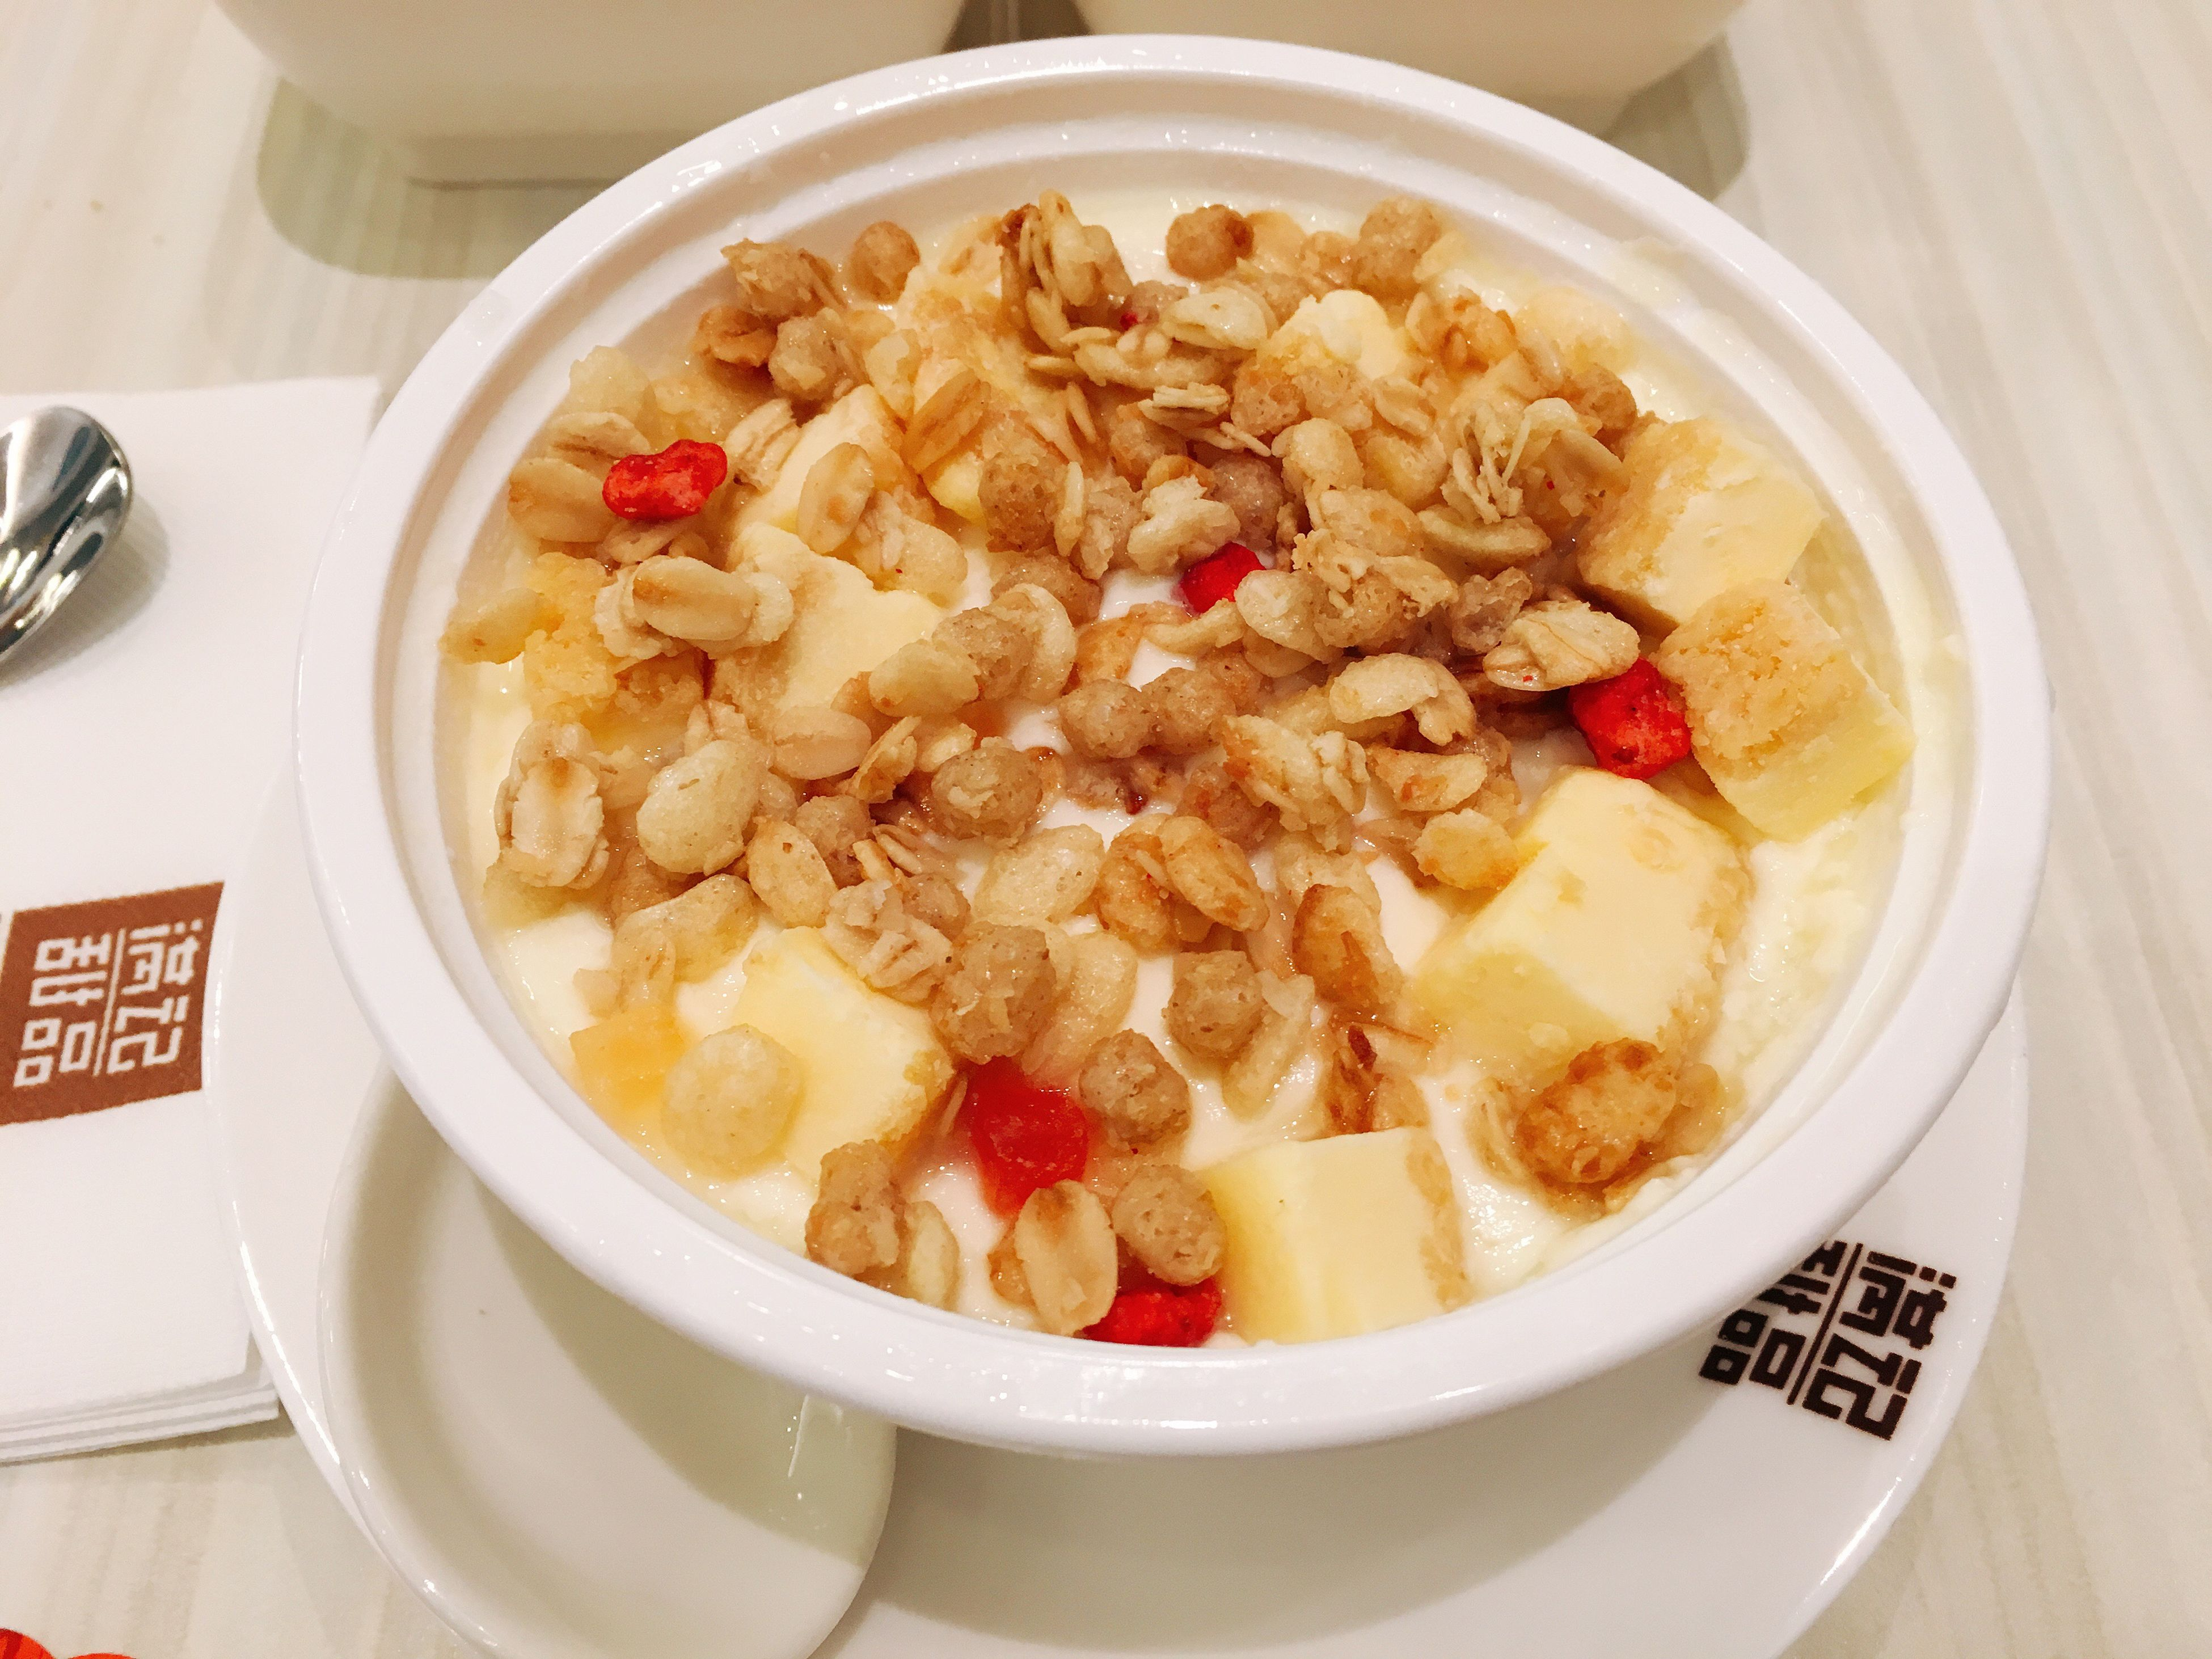 healthy eating, bowl, food and drink, breakfast, milk, food, healthy lifestyle, fruit, freshness, indoors, no people, close-up, porridge, ready-to-eat, granola, day